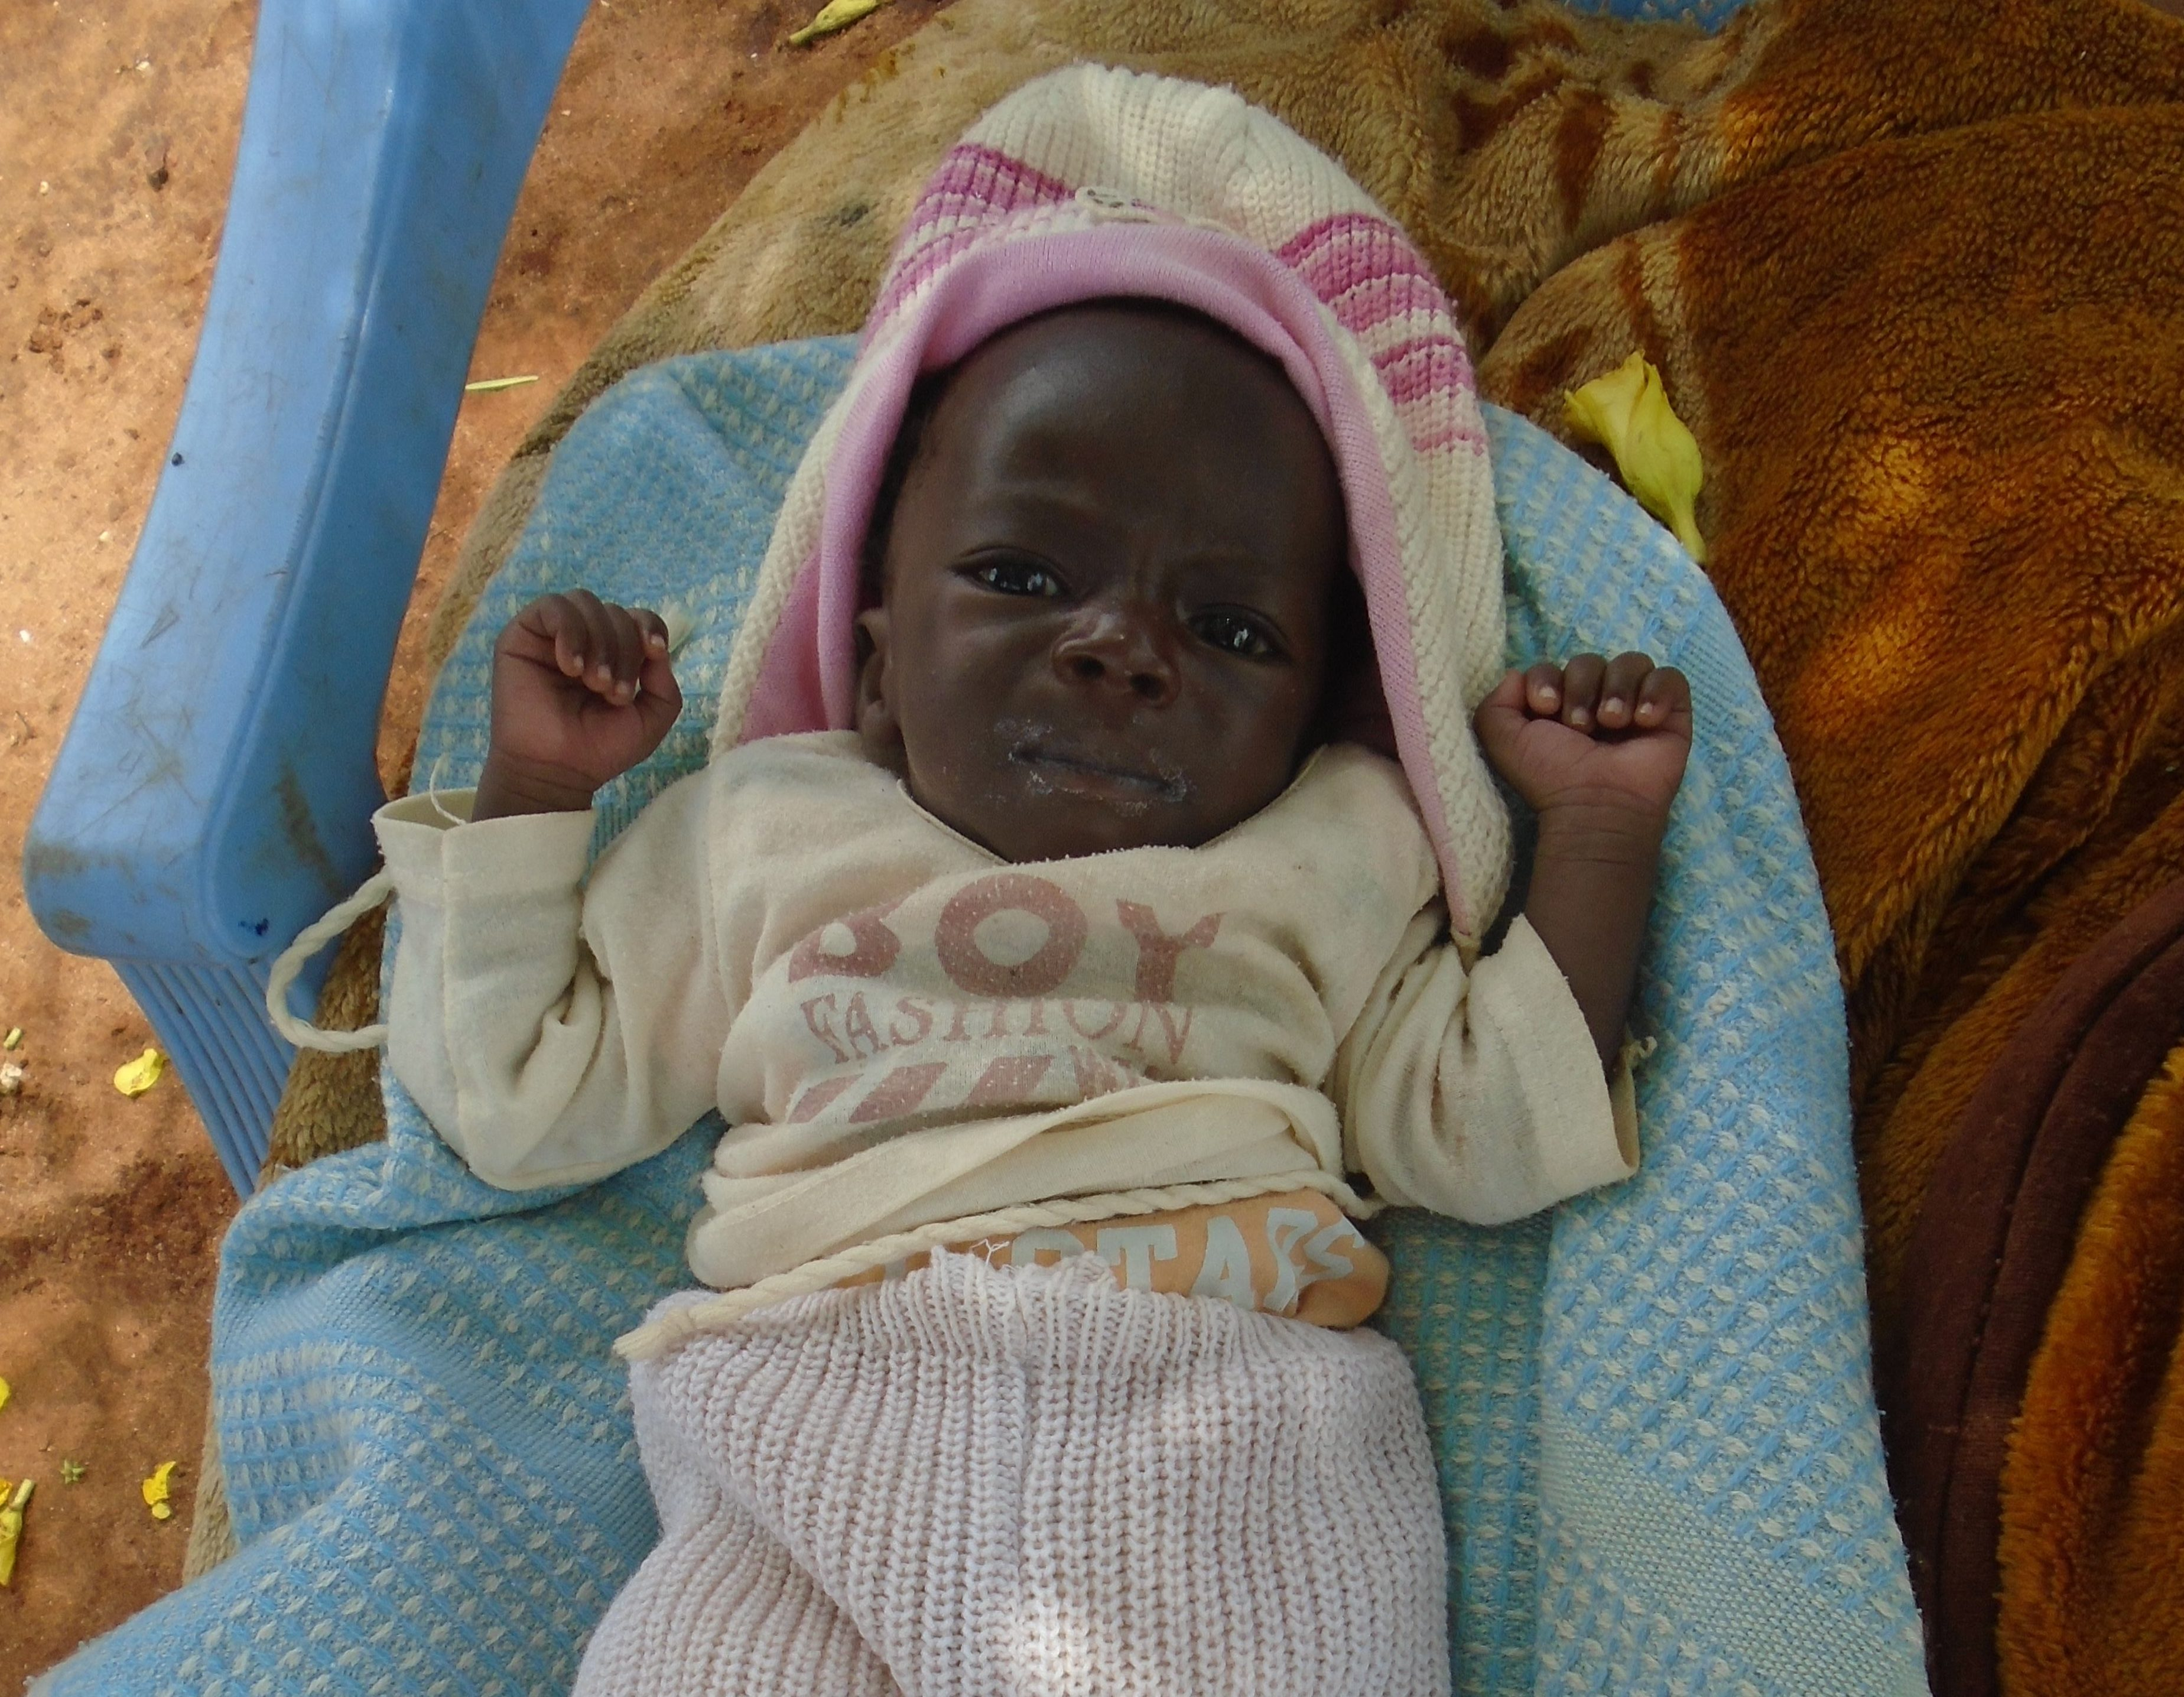 Gedion, at one month old, was severely underweight and struggling to survive